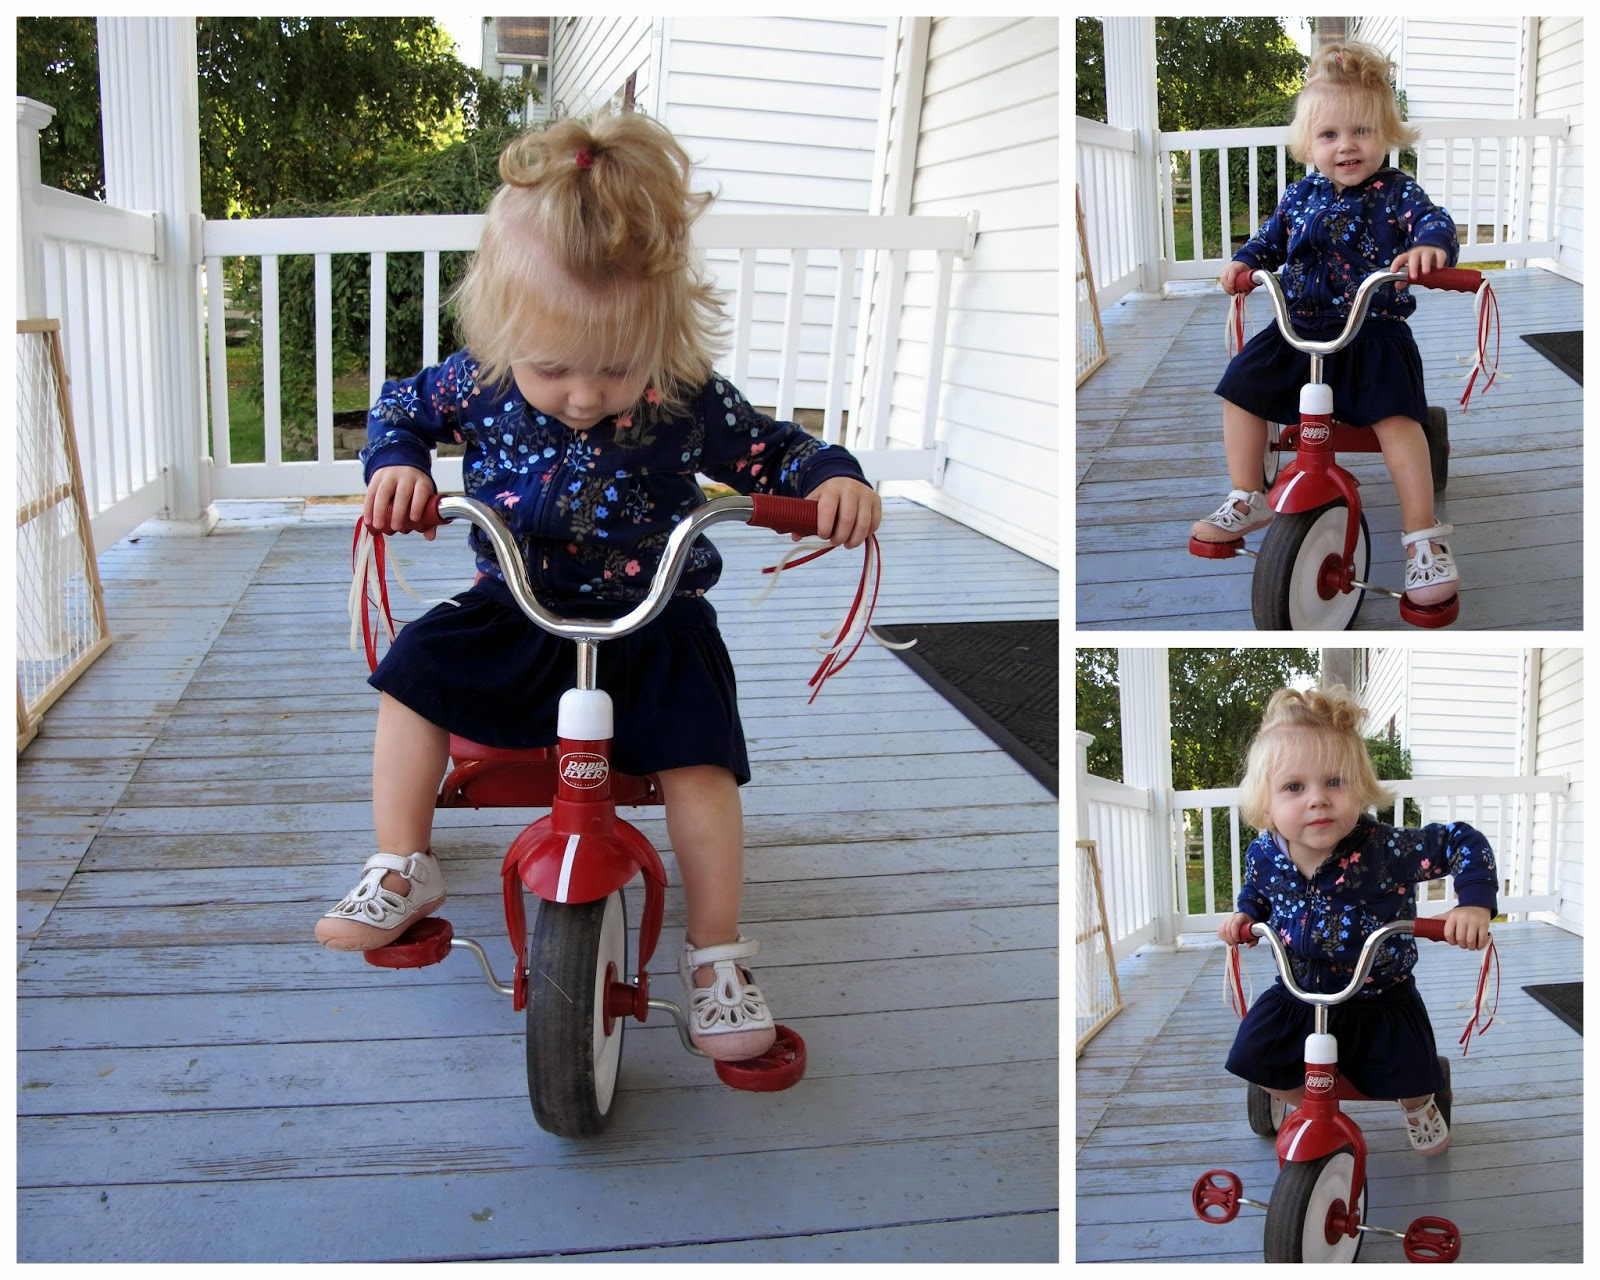 Stella on Her Baby Bike